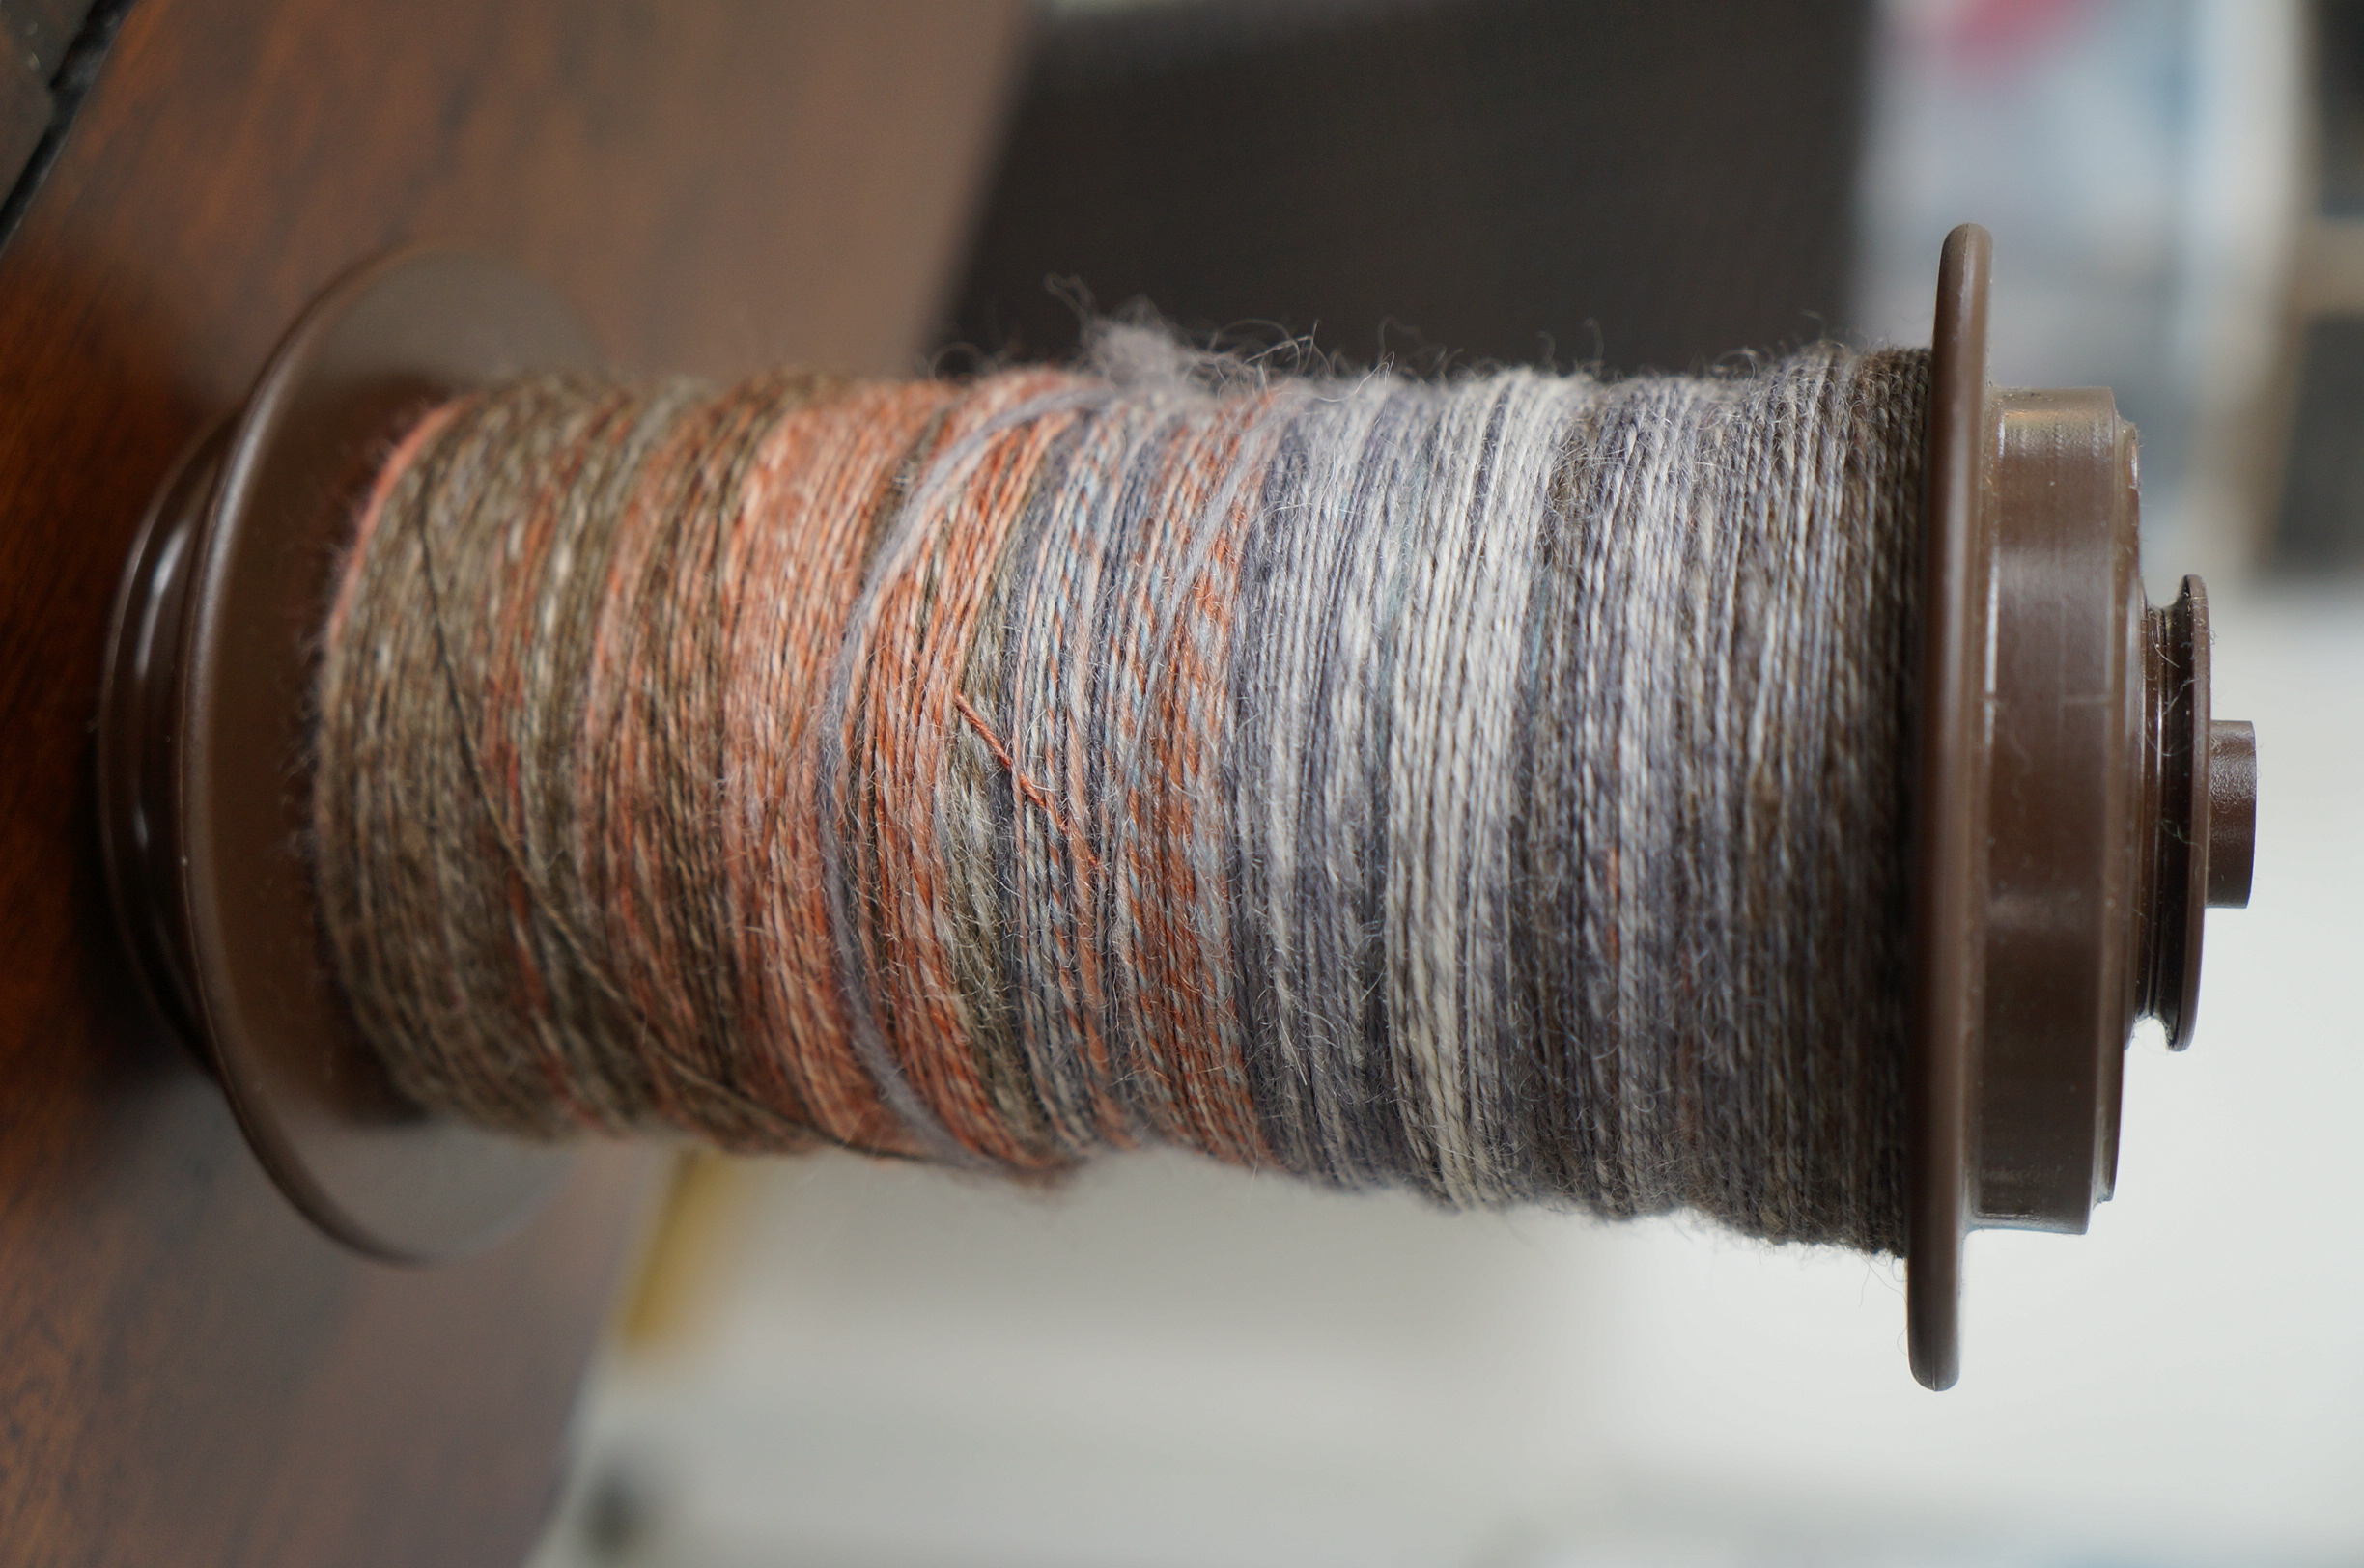 Squoosh Fiberarts SW BFL single. Spun in Z direction, at 16:1 ratio.